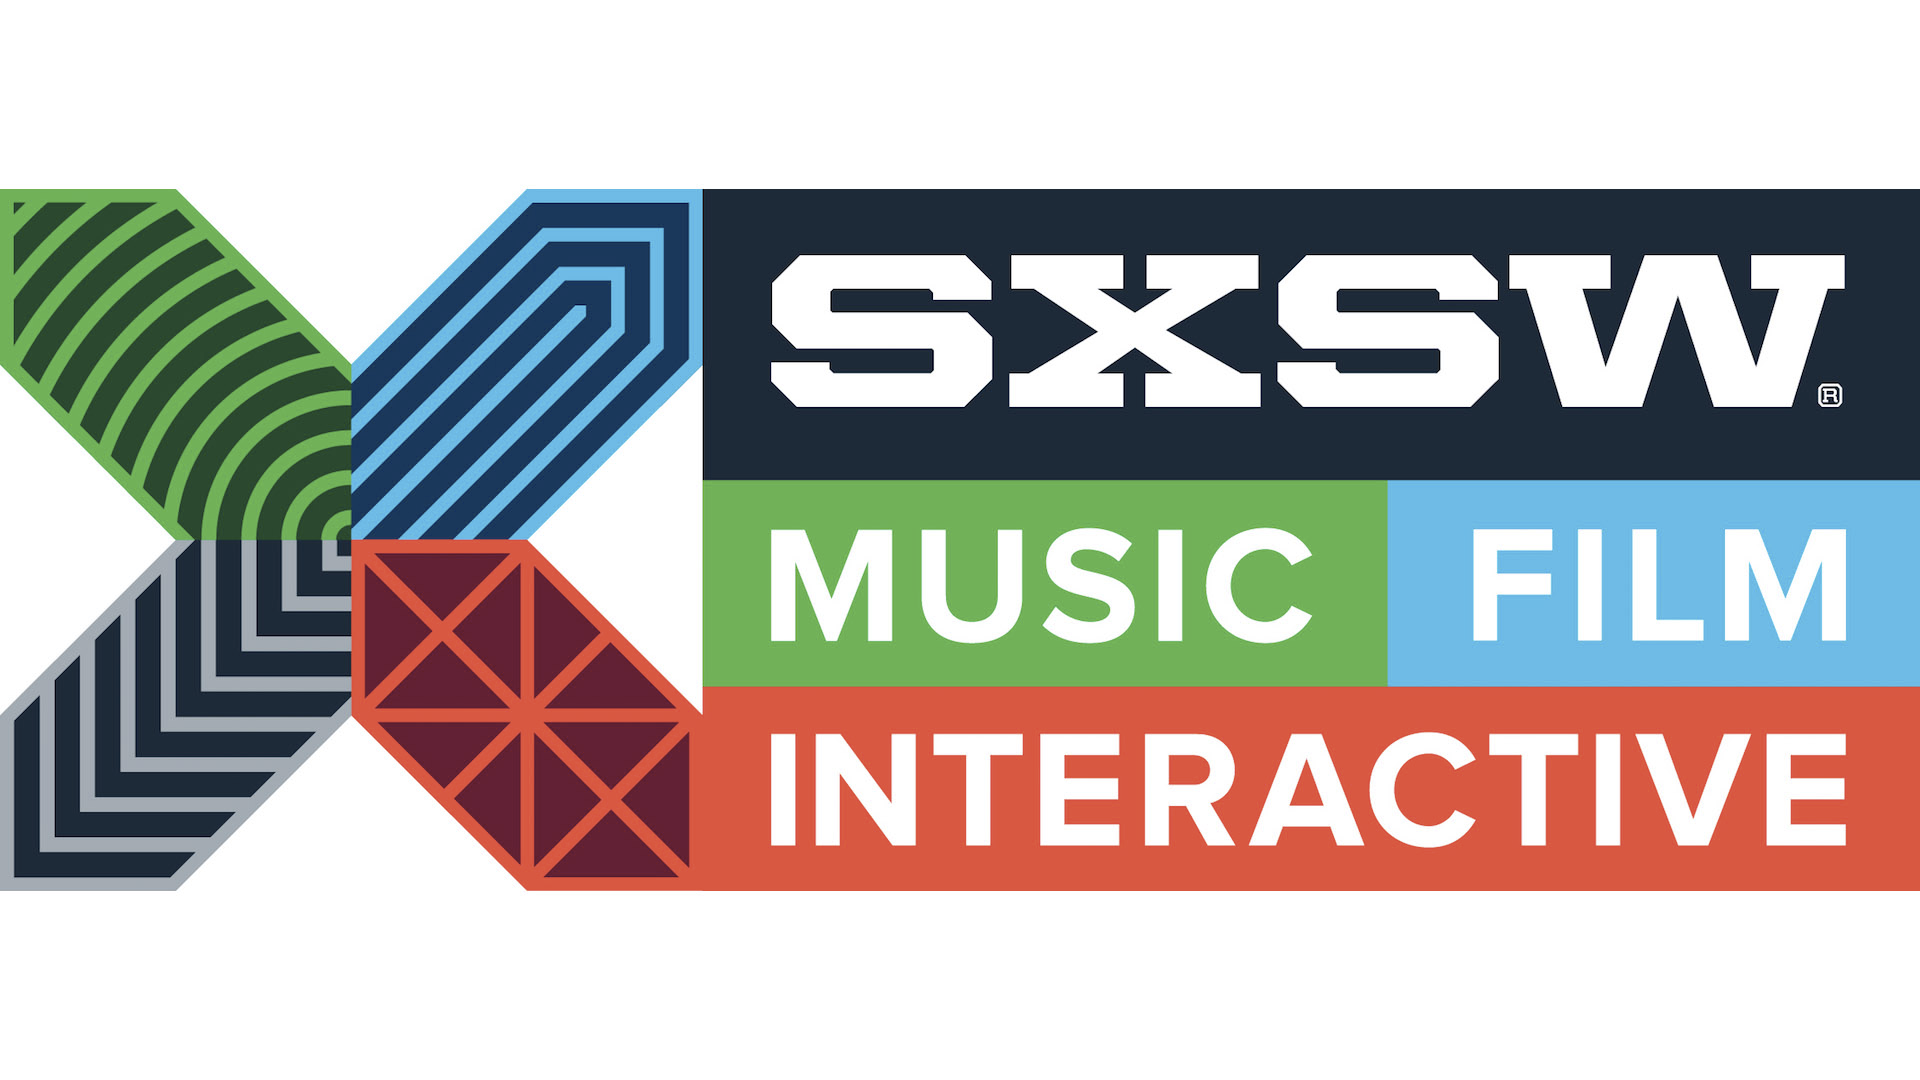 SXSW music film interactive, south by south west festival logo, speaking engagements